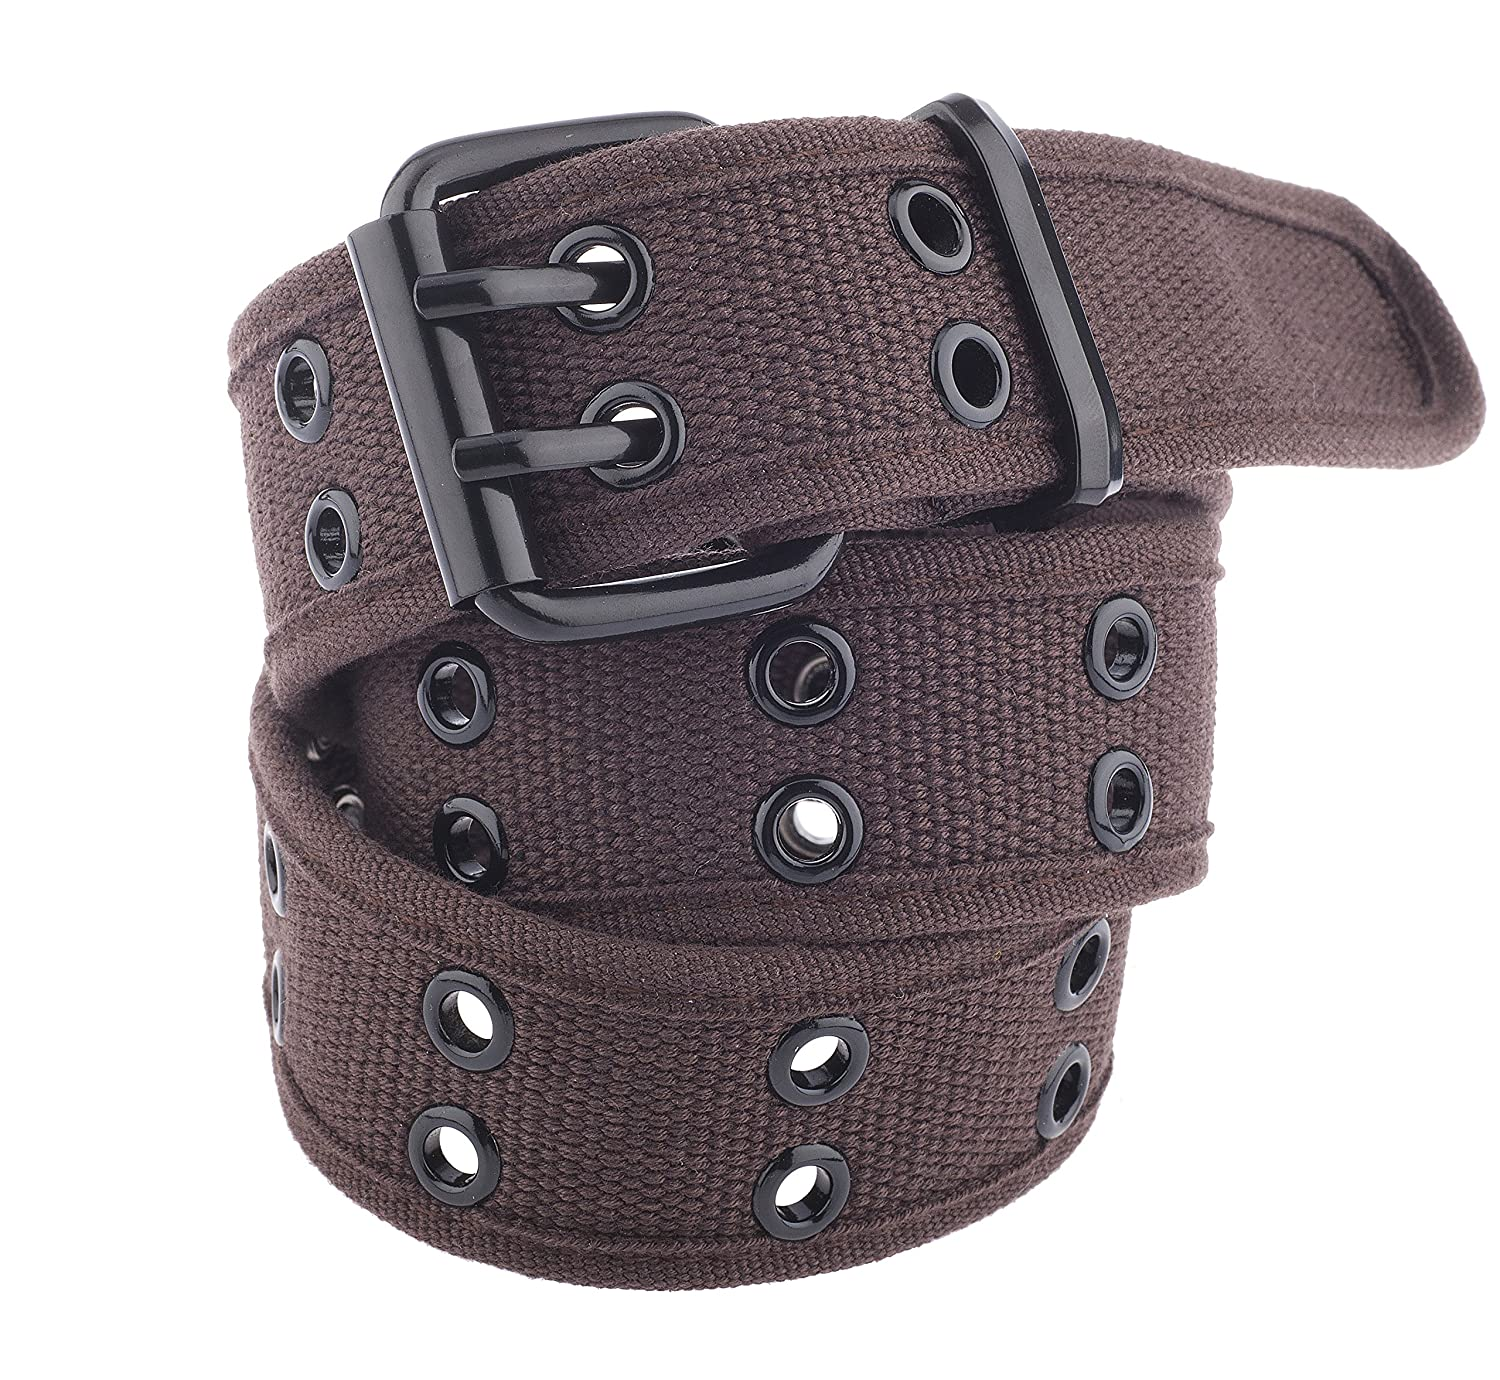 Unisex Two-Hole Canvas Belt - Available in 14 Colors